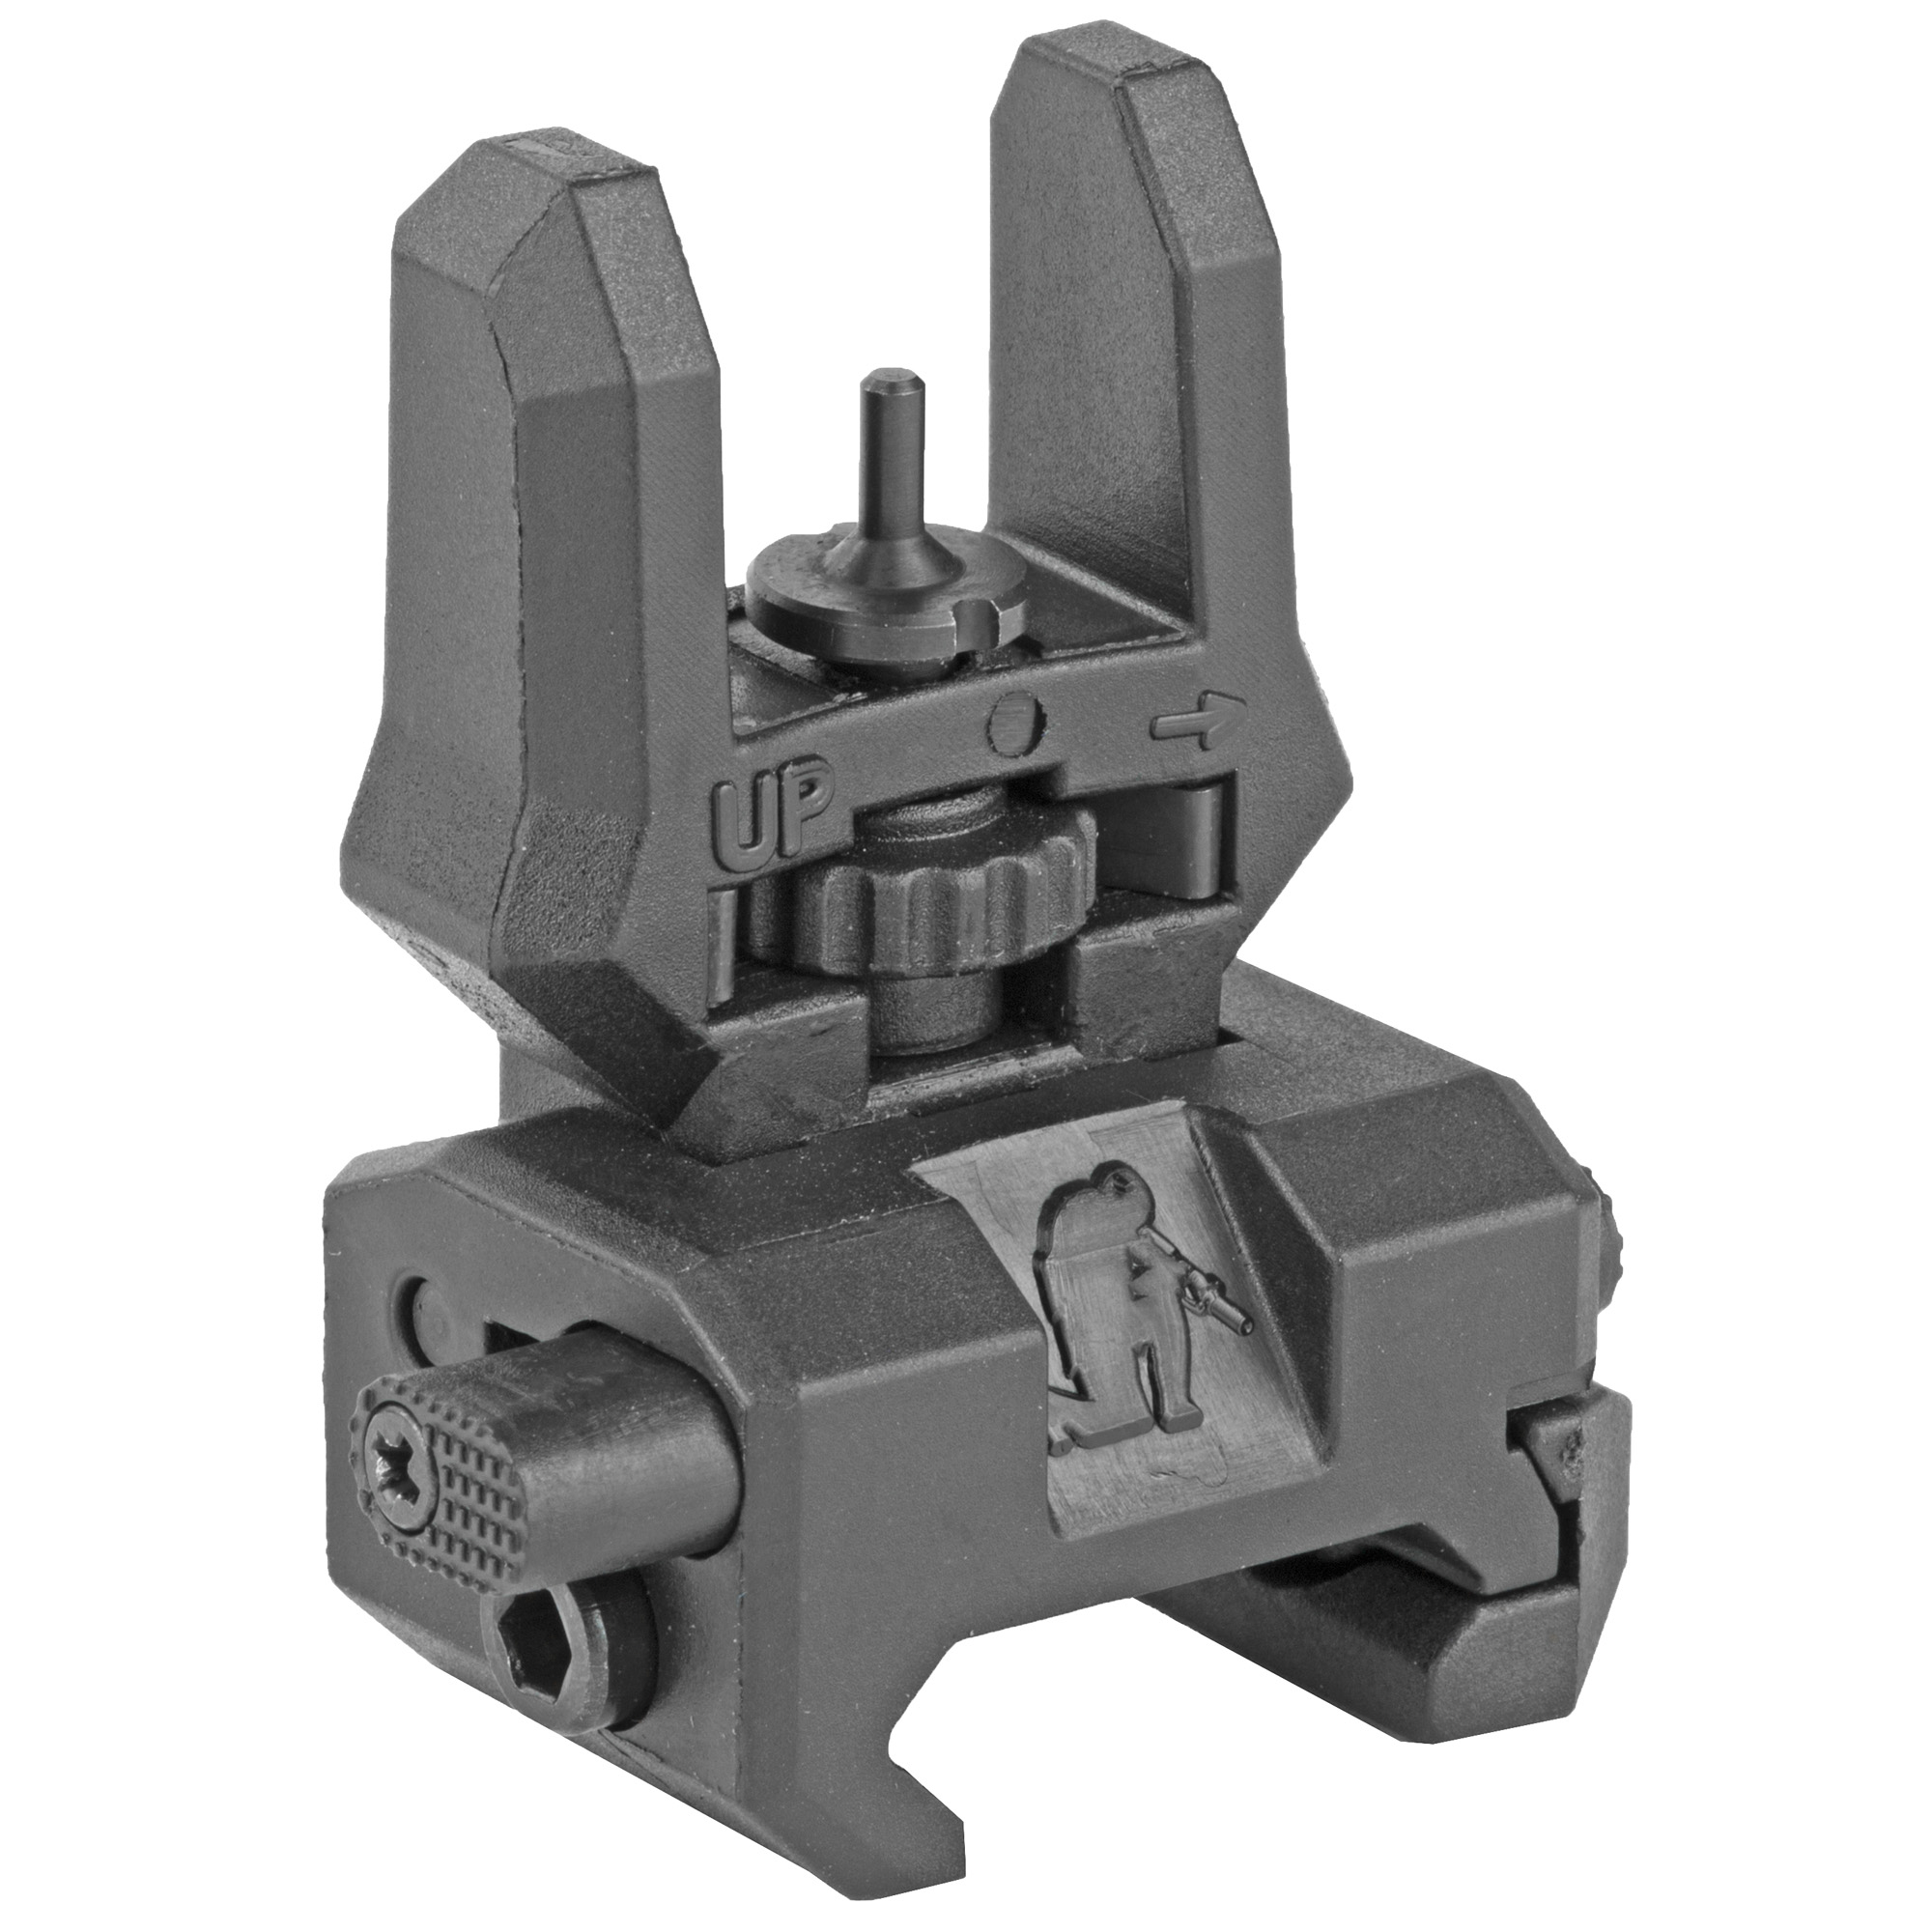 Command Arms Accessories FFS Folding Up Front Sight fits Picatinny Rail. Super low profile front sight features a toolless adjustable center post for elevation surrounded by two guide posts to assist in focusing.